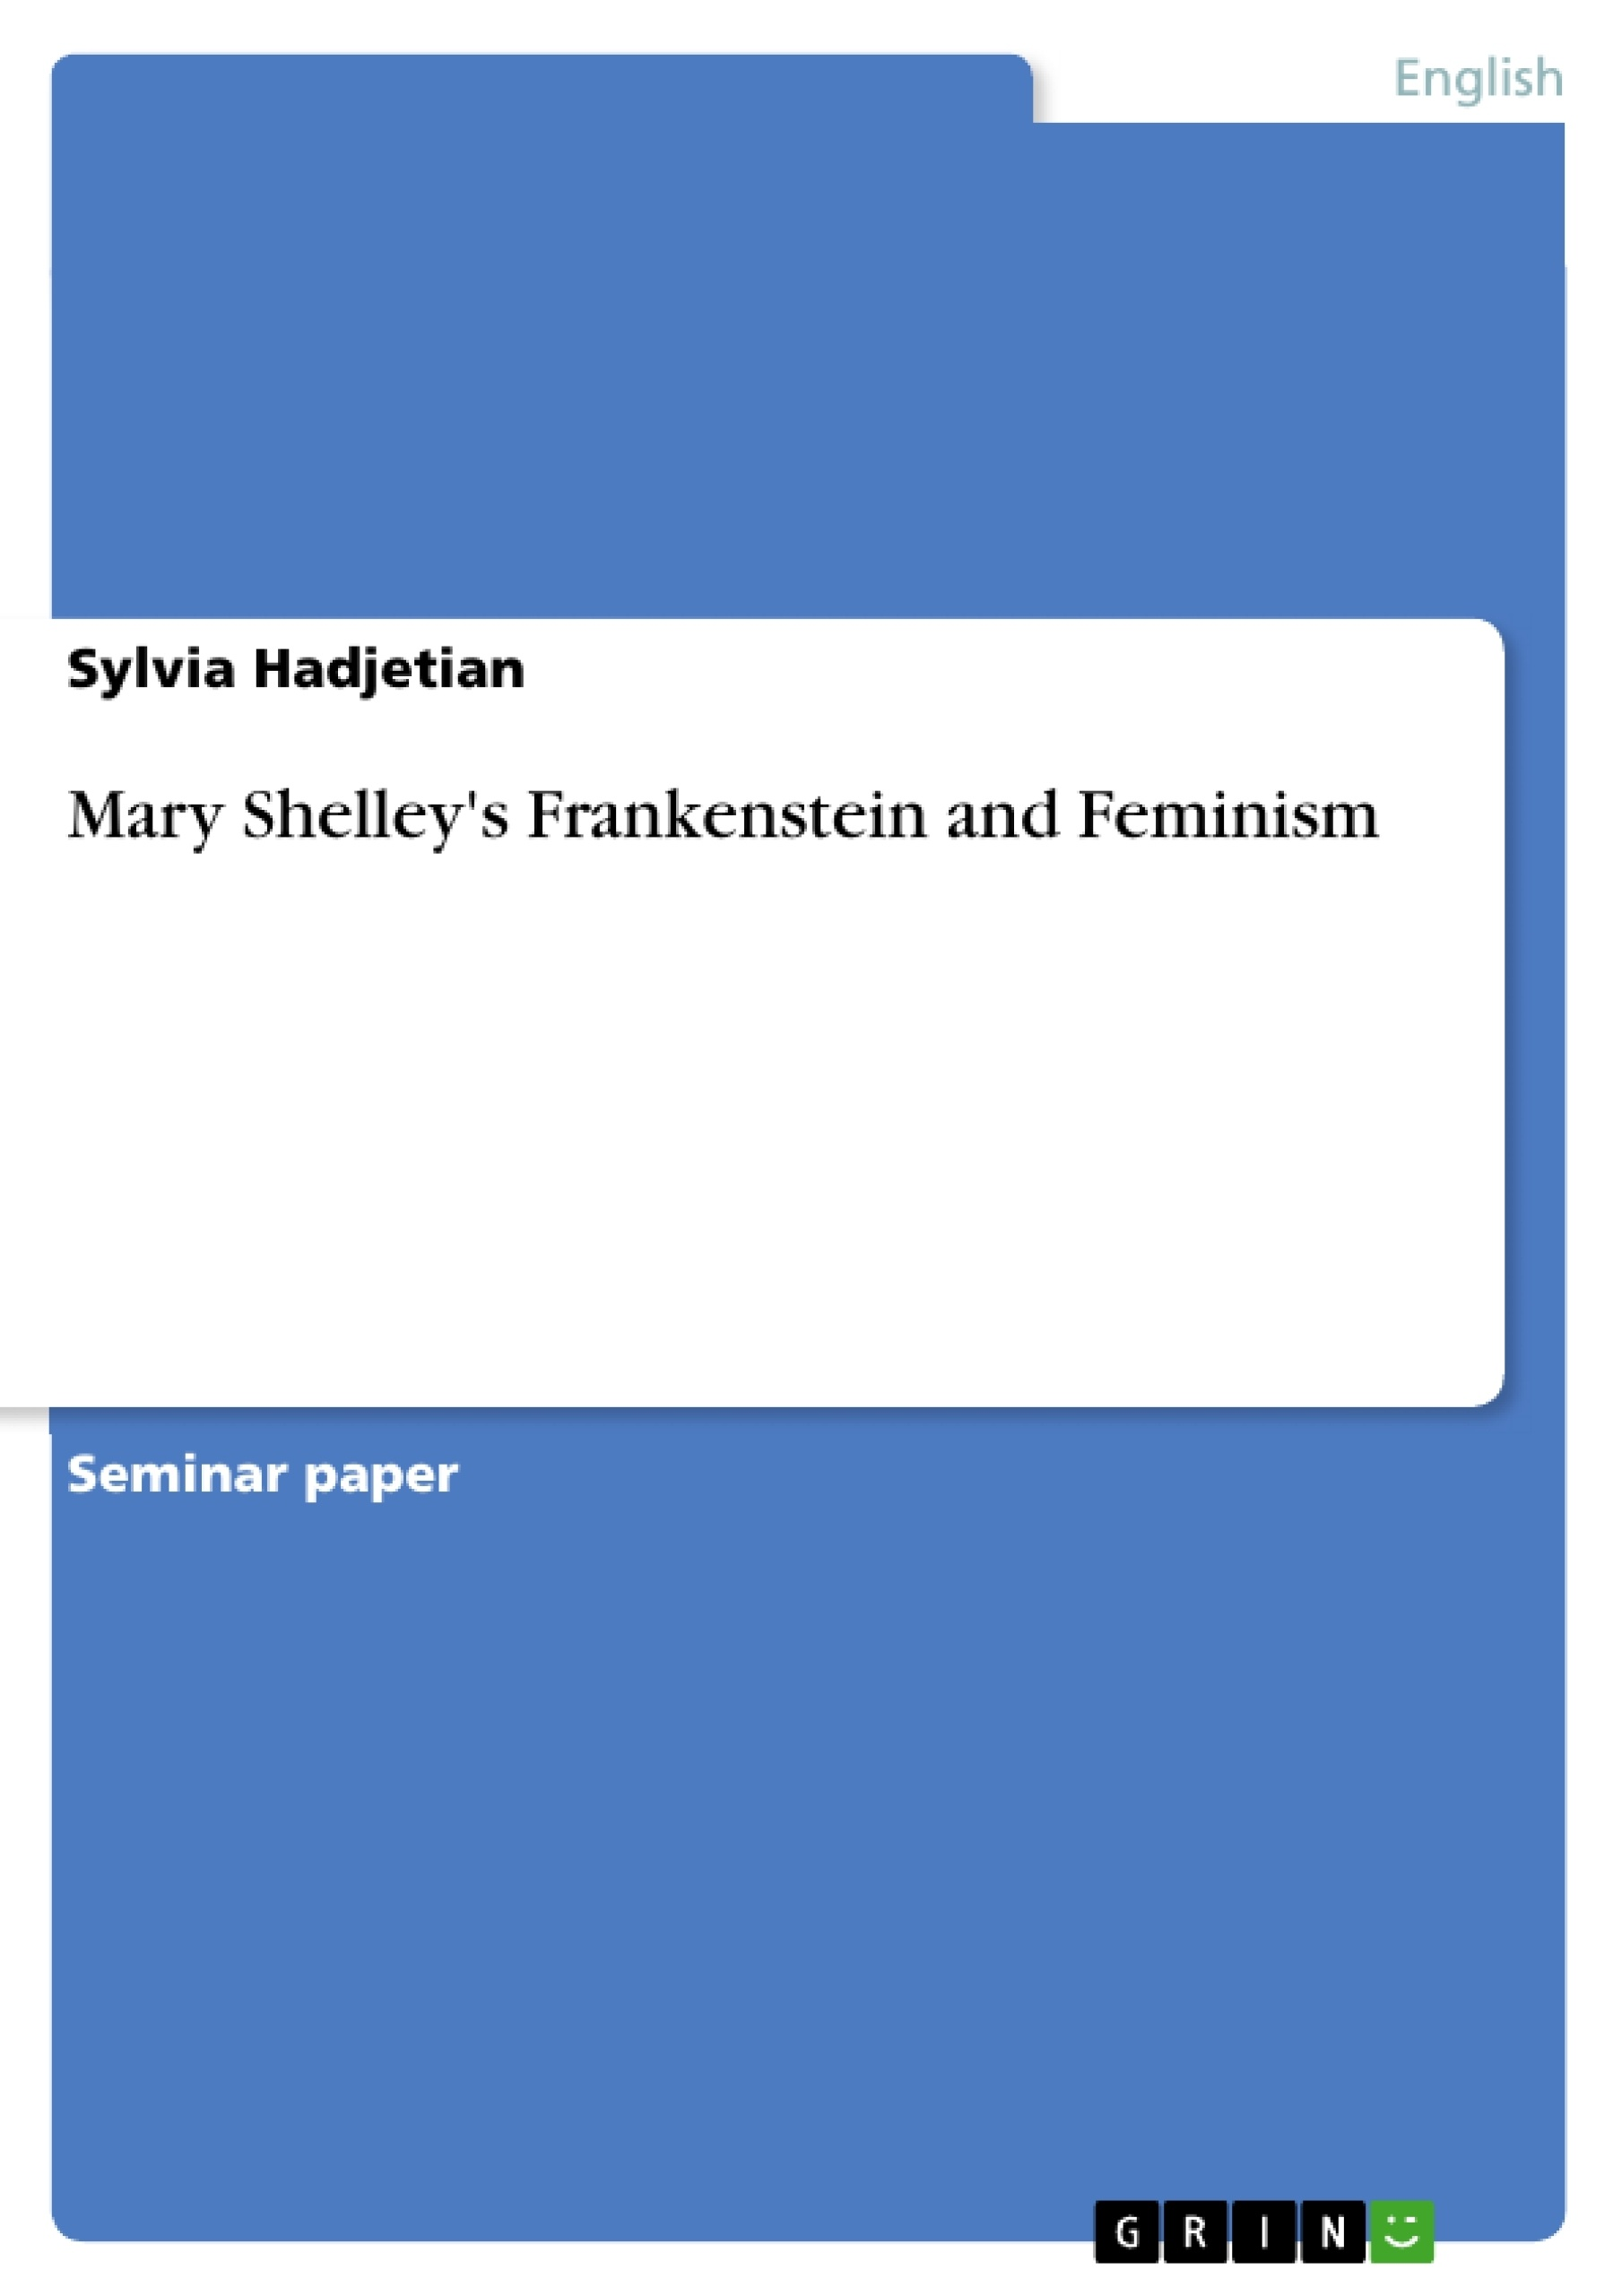 mary shelley s frankenstein and feminism publish your master s mary shelley s frankenstein and feminism publish your master s thesis bachelor s thesis essay or term paper